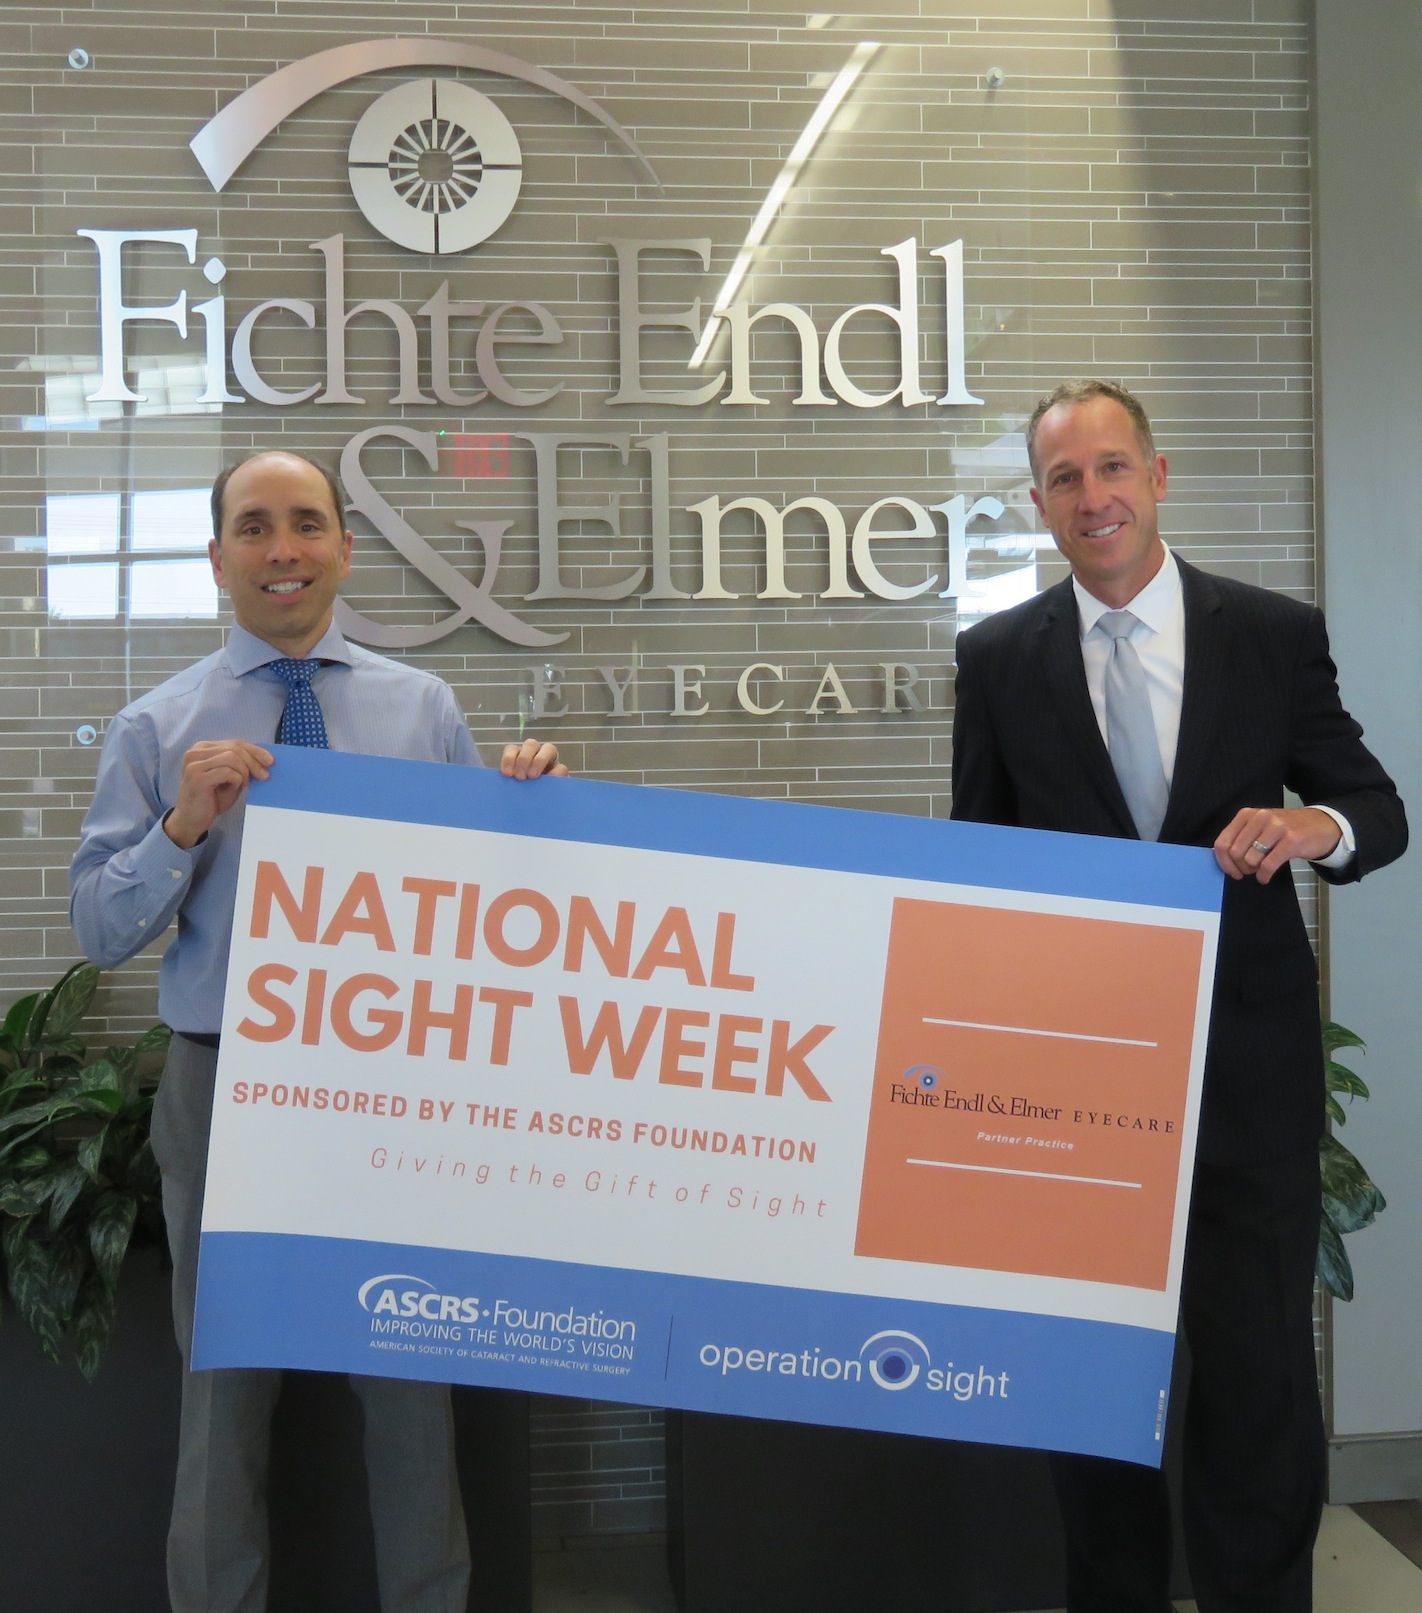 From left, Michael Endl M.D. and Thomas Elmer Jr. M.D. pose with the National Sight Week banner. (Photo by David Yarger)